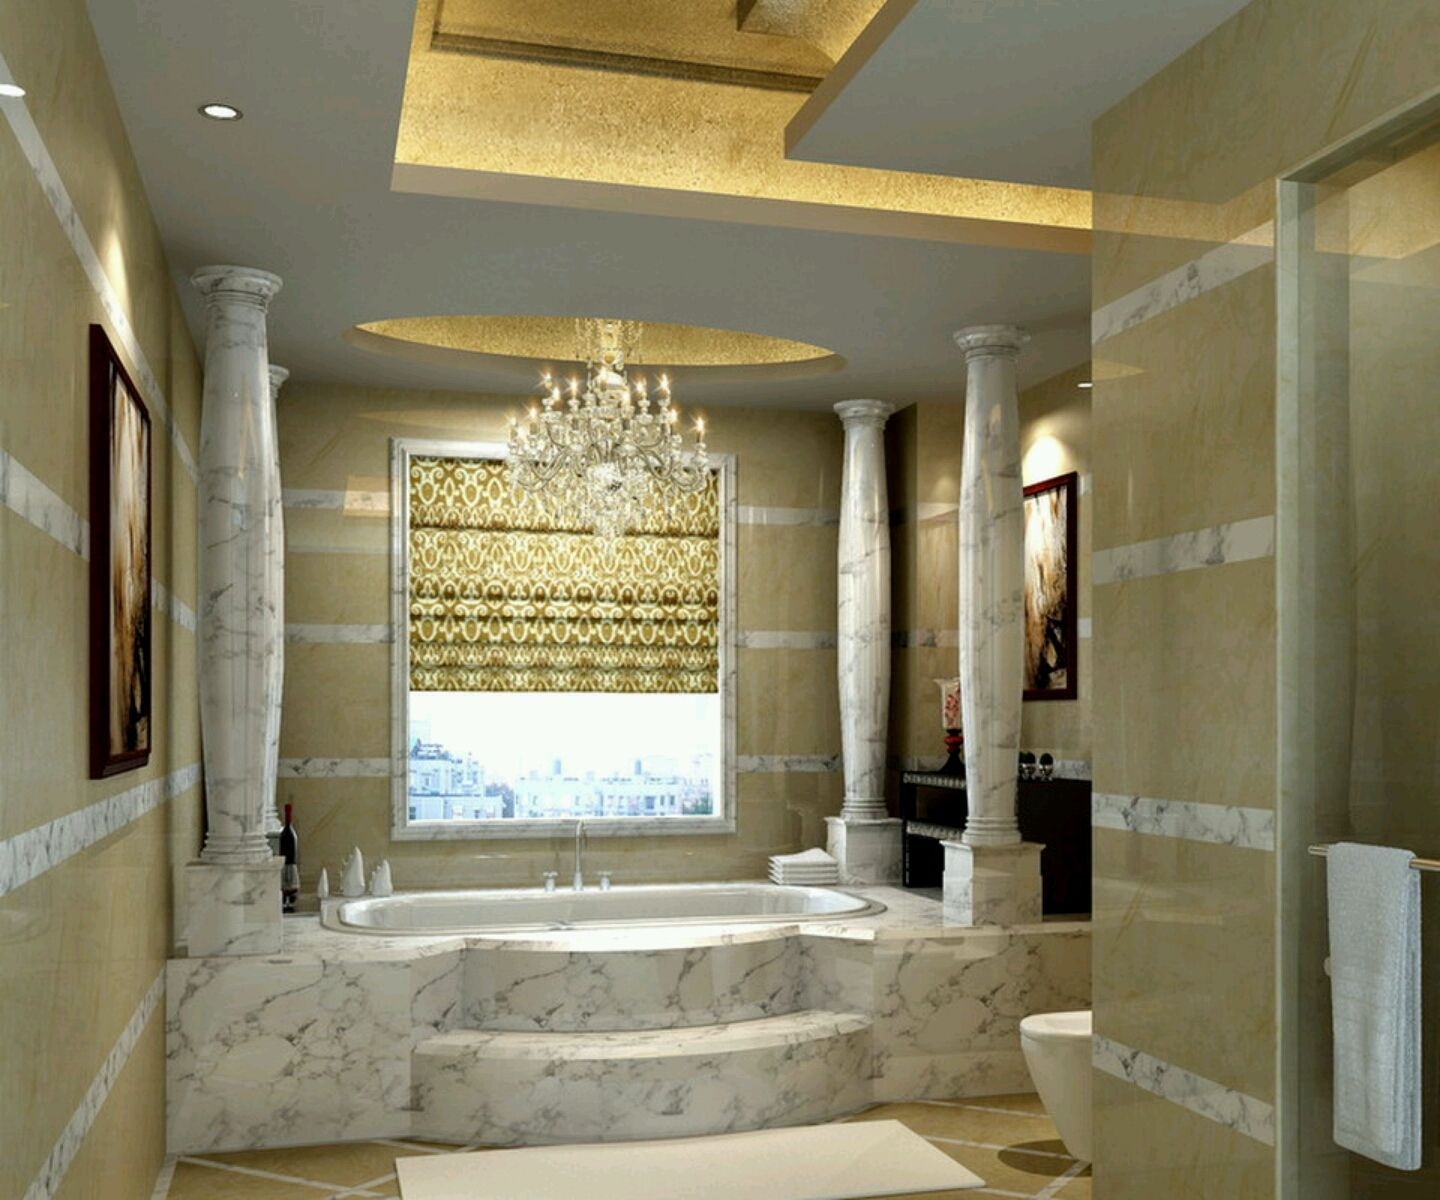 11 Luxurious Bathroom That Will Make You Don't Want To Leave Amusing Luxurious Bathroom Review